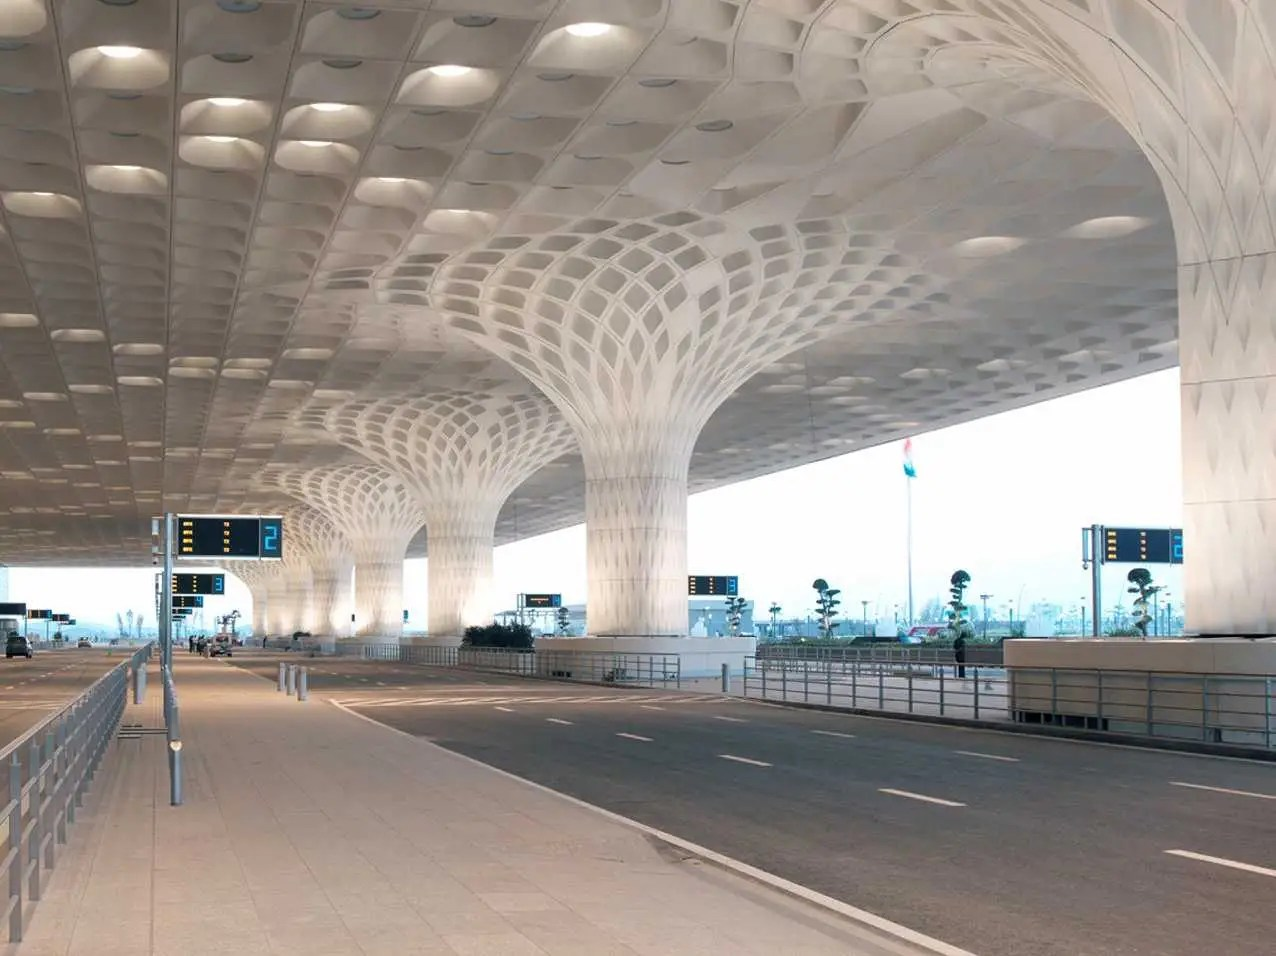 Chhatrapati Shivaji International Airport – Terminal 2, India